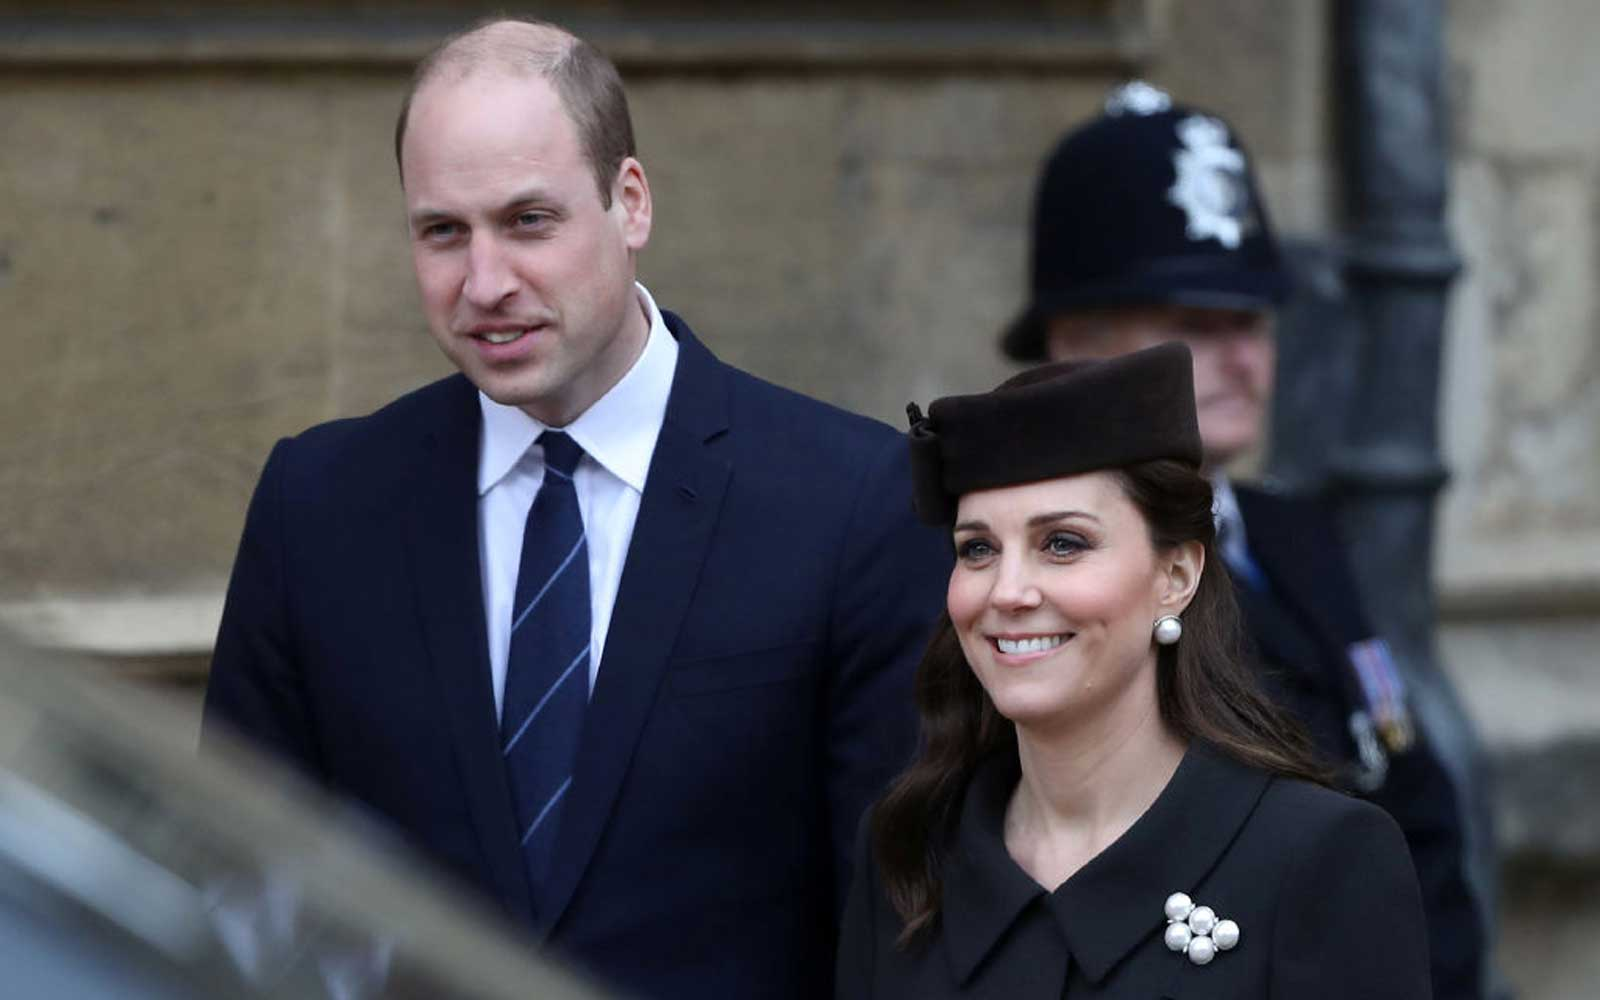 Did Prince William Just Accidentally Reveal Whether He and Kate Are Having a Boy or Girl? (Video)